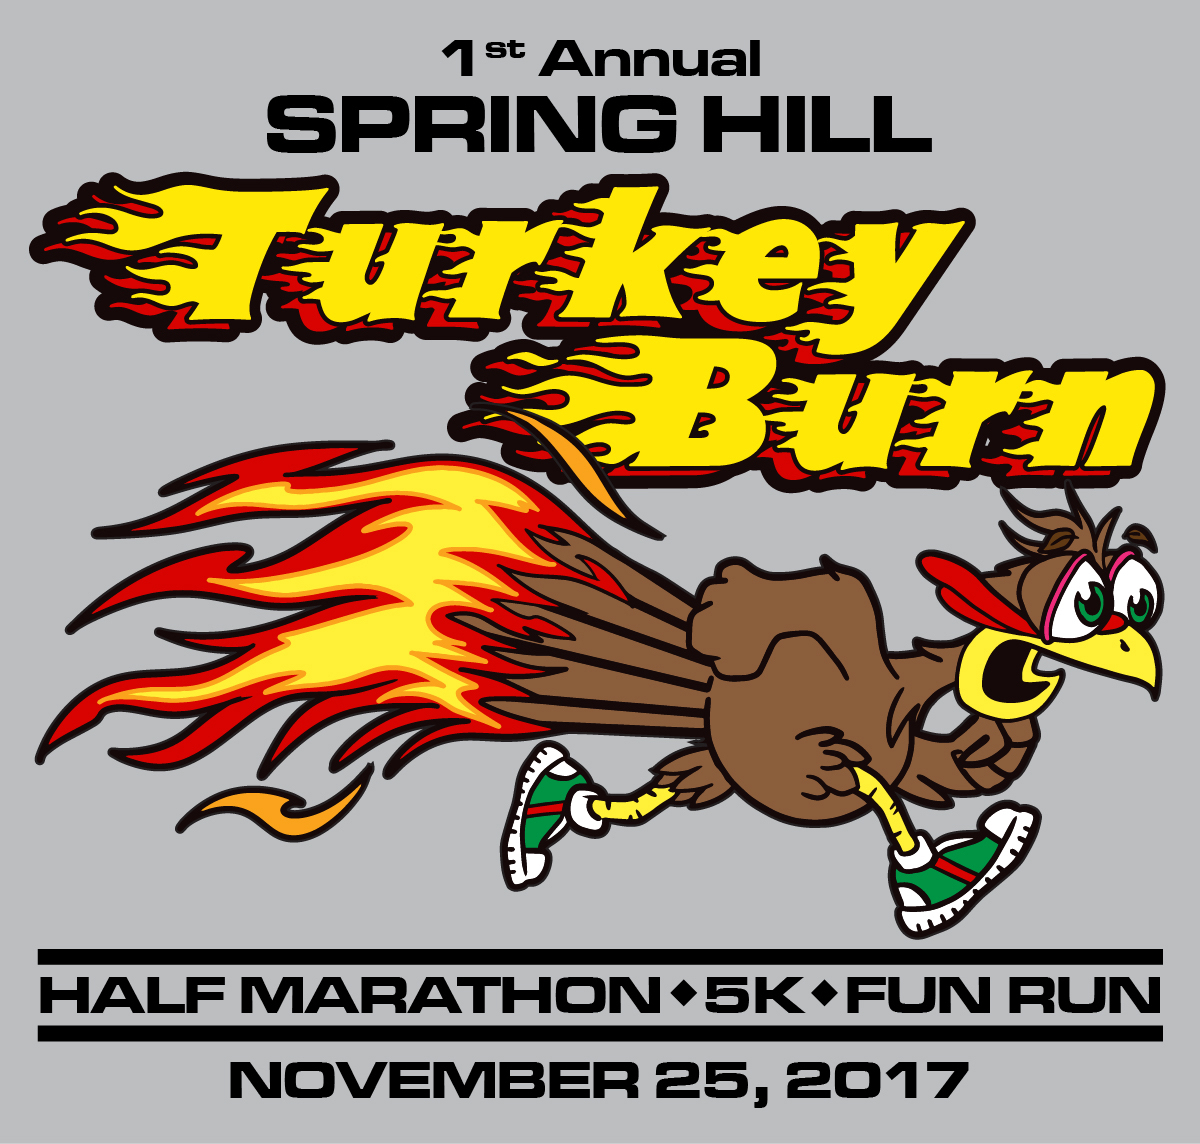 Spring Hill Turkey Burn Half-Marathon 5K Fun Run